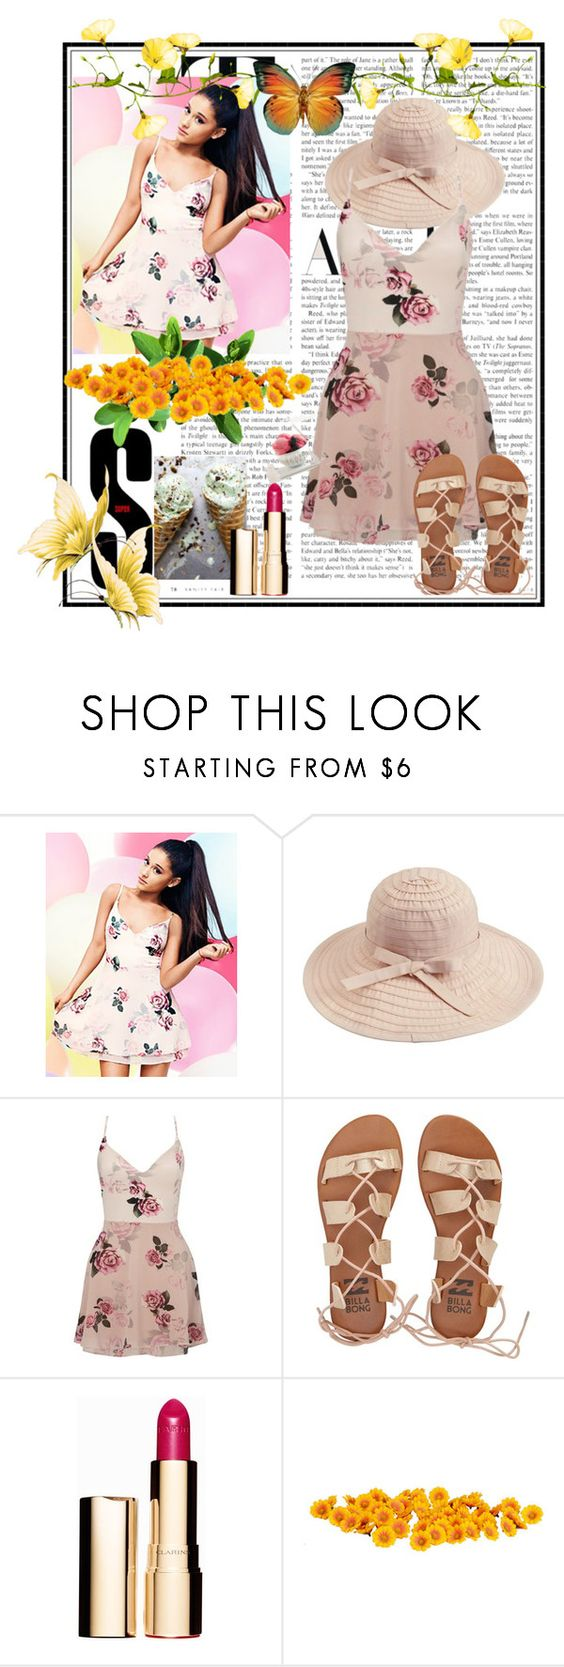 """Summer"" by dudavagsantos ❤ liked on Polyvore featuring Lipsy, Billabong, Clarins and Summer"